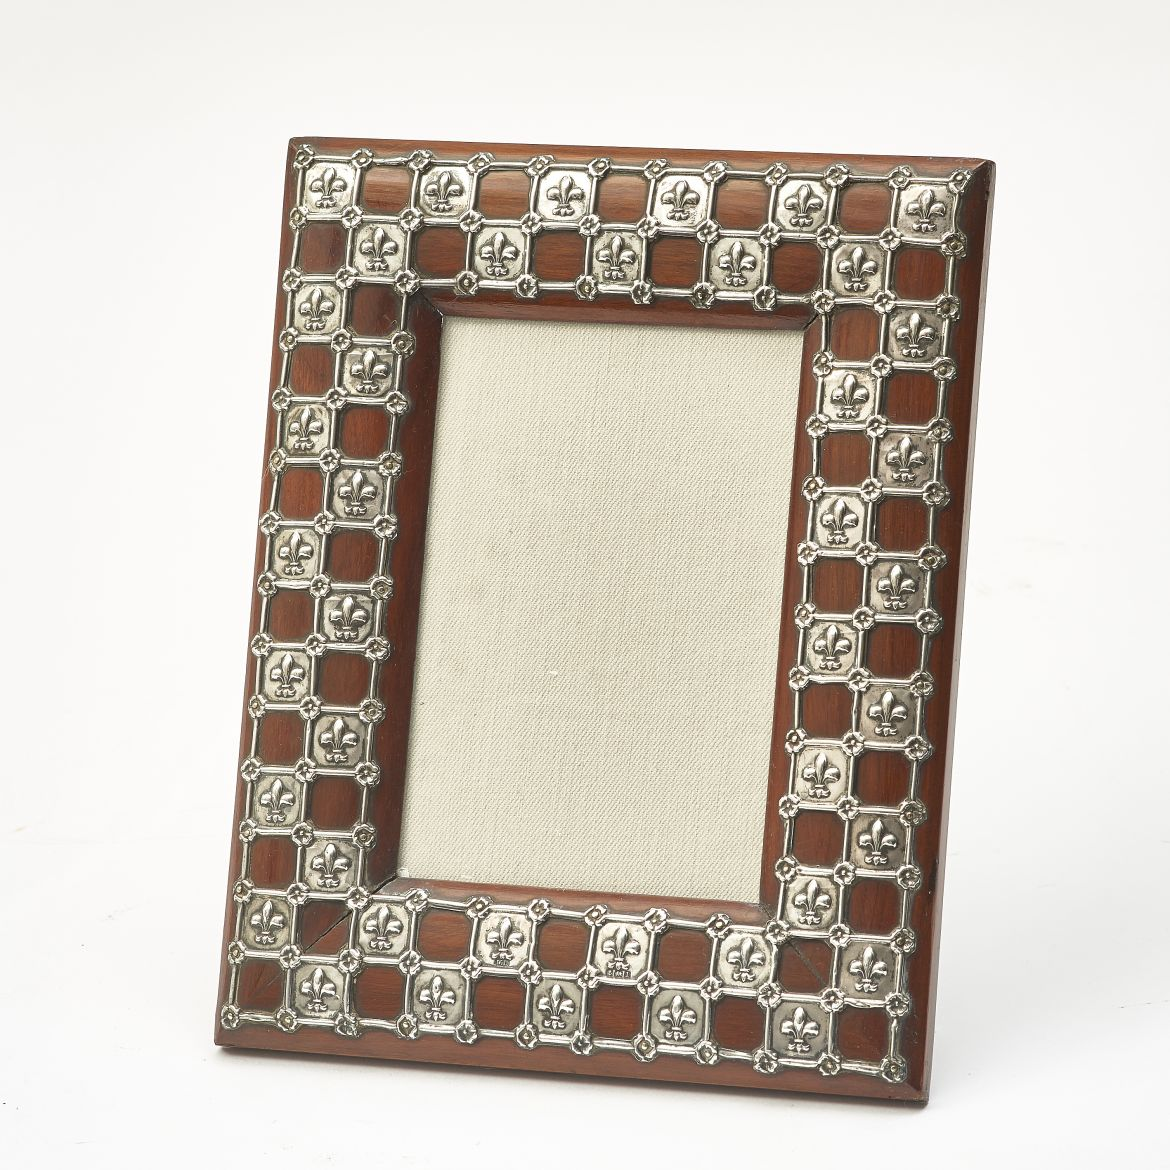 William Deakin Fleur De Lys Photo Frame